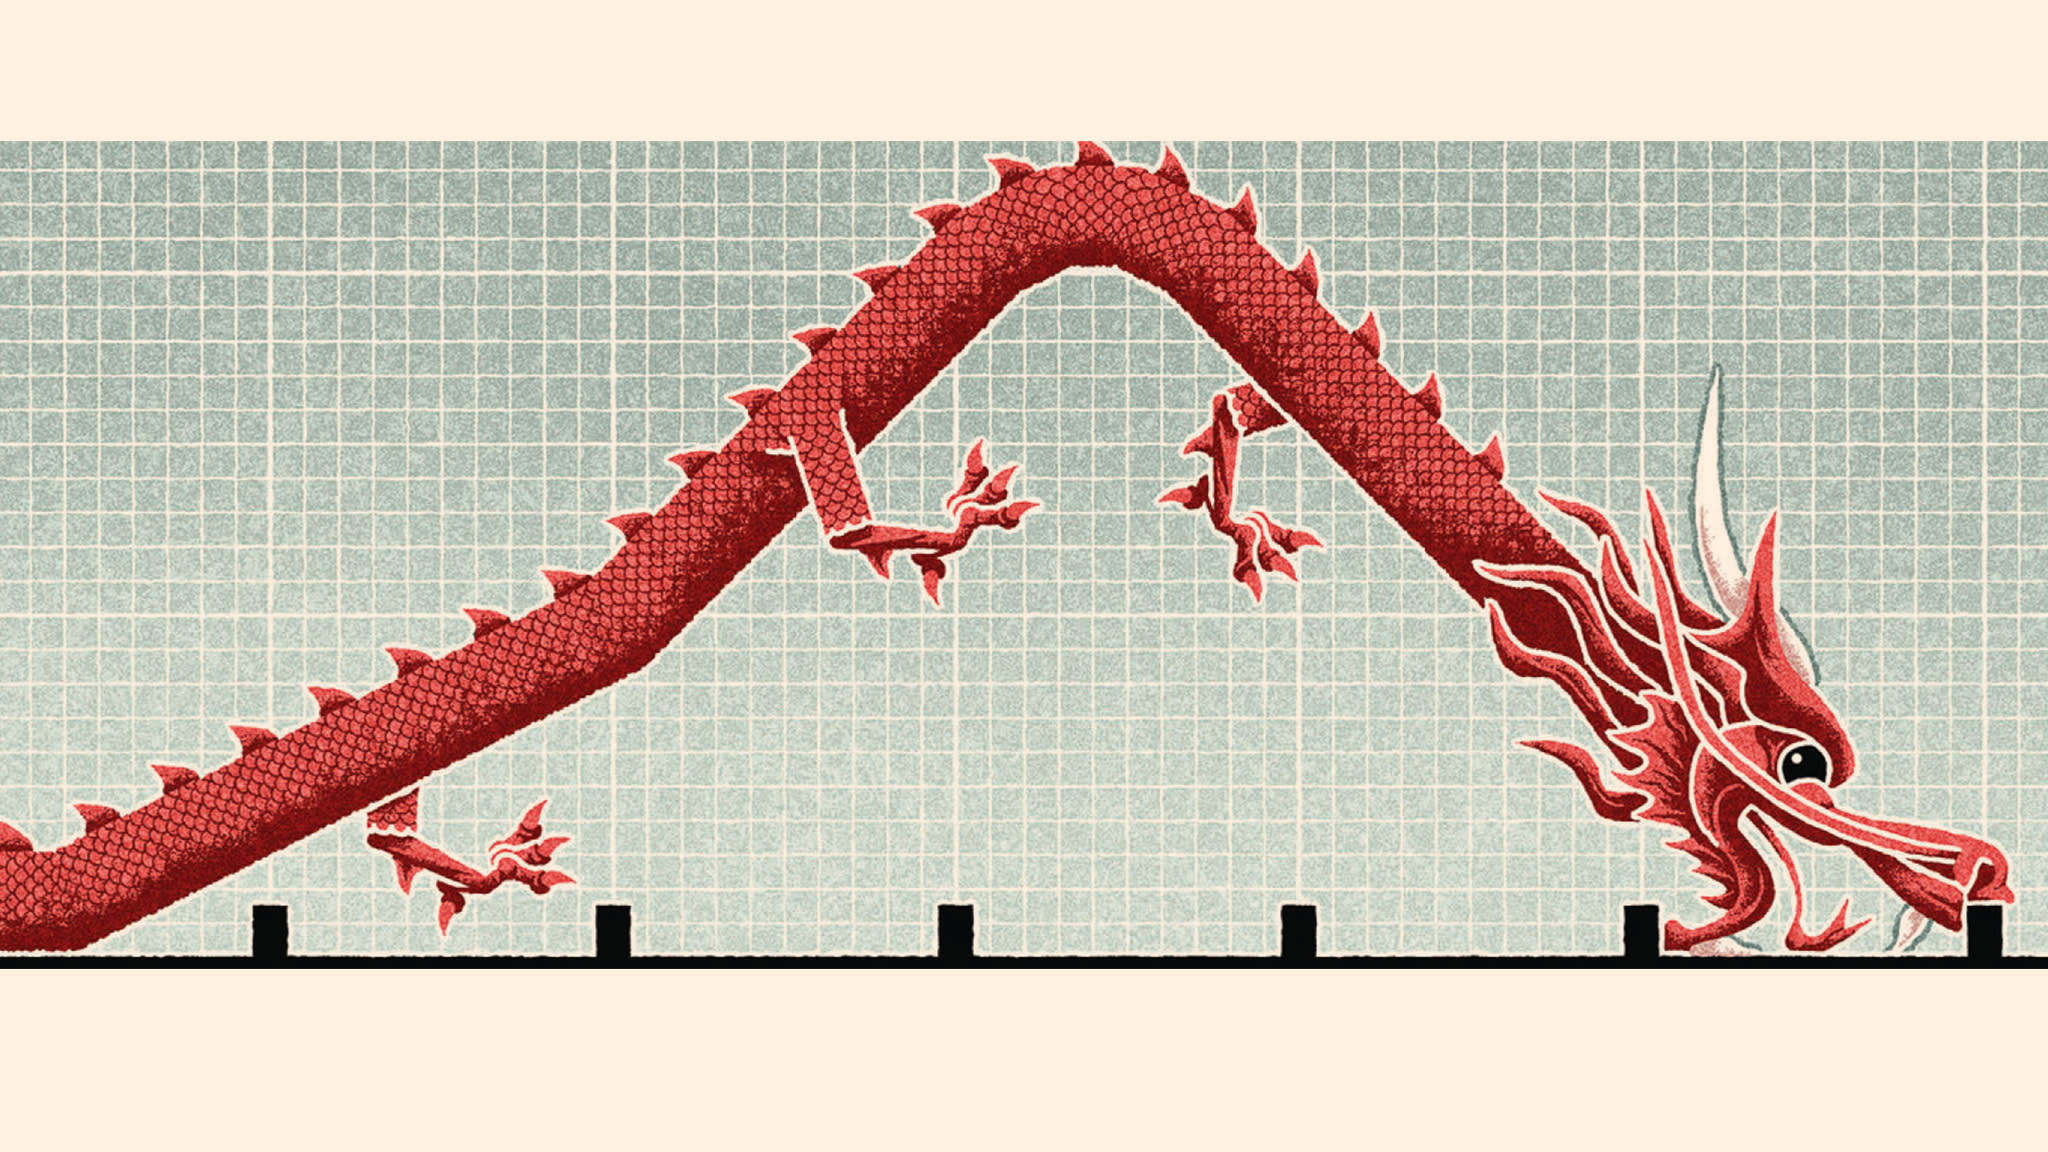 Why China's economy might topple | Financial Times